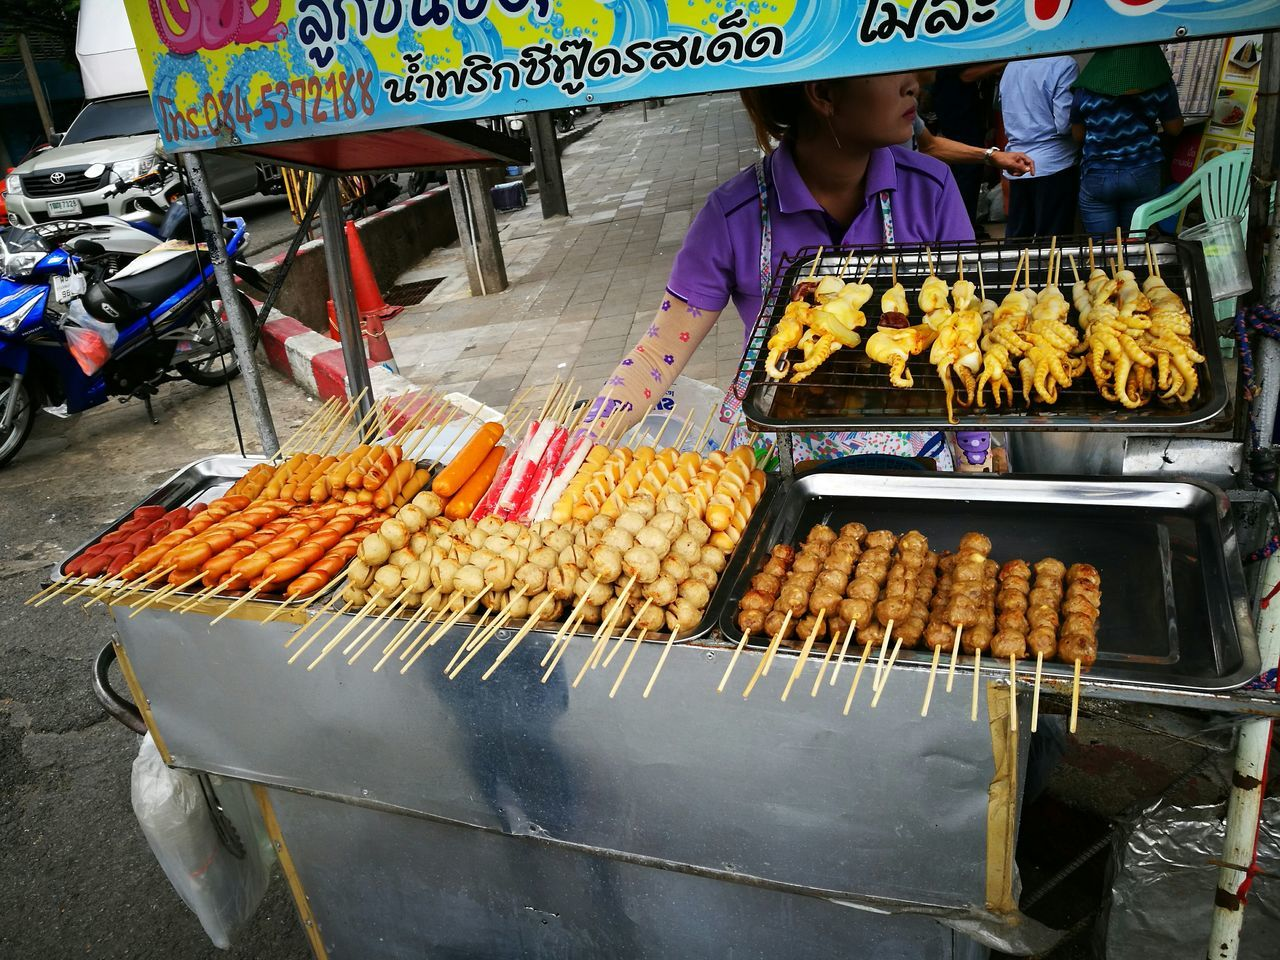 Grilled Food Street Food Ready-to-eat Foodstall Bangkok Thailand Bangkok Streetphotography Street Photography Streetphotography Streetphotographer EyeEm Best Shots - The Streets Real People EyeEm EyeEm Best Shots EyeEm Gallery EyeEmBestPics Eyeemphotography Color Photography Colour Photography Foodvendor